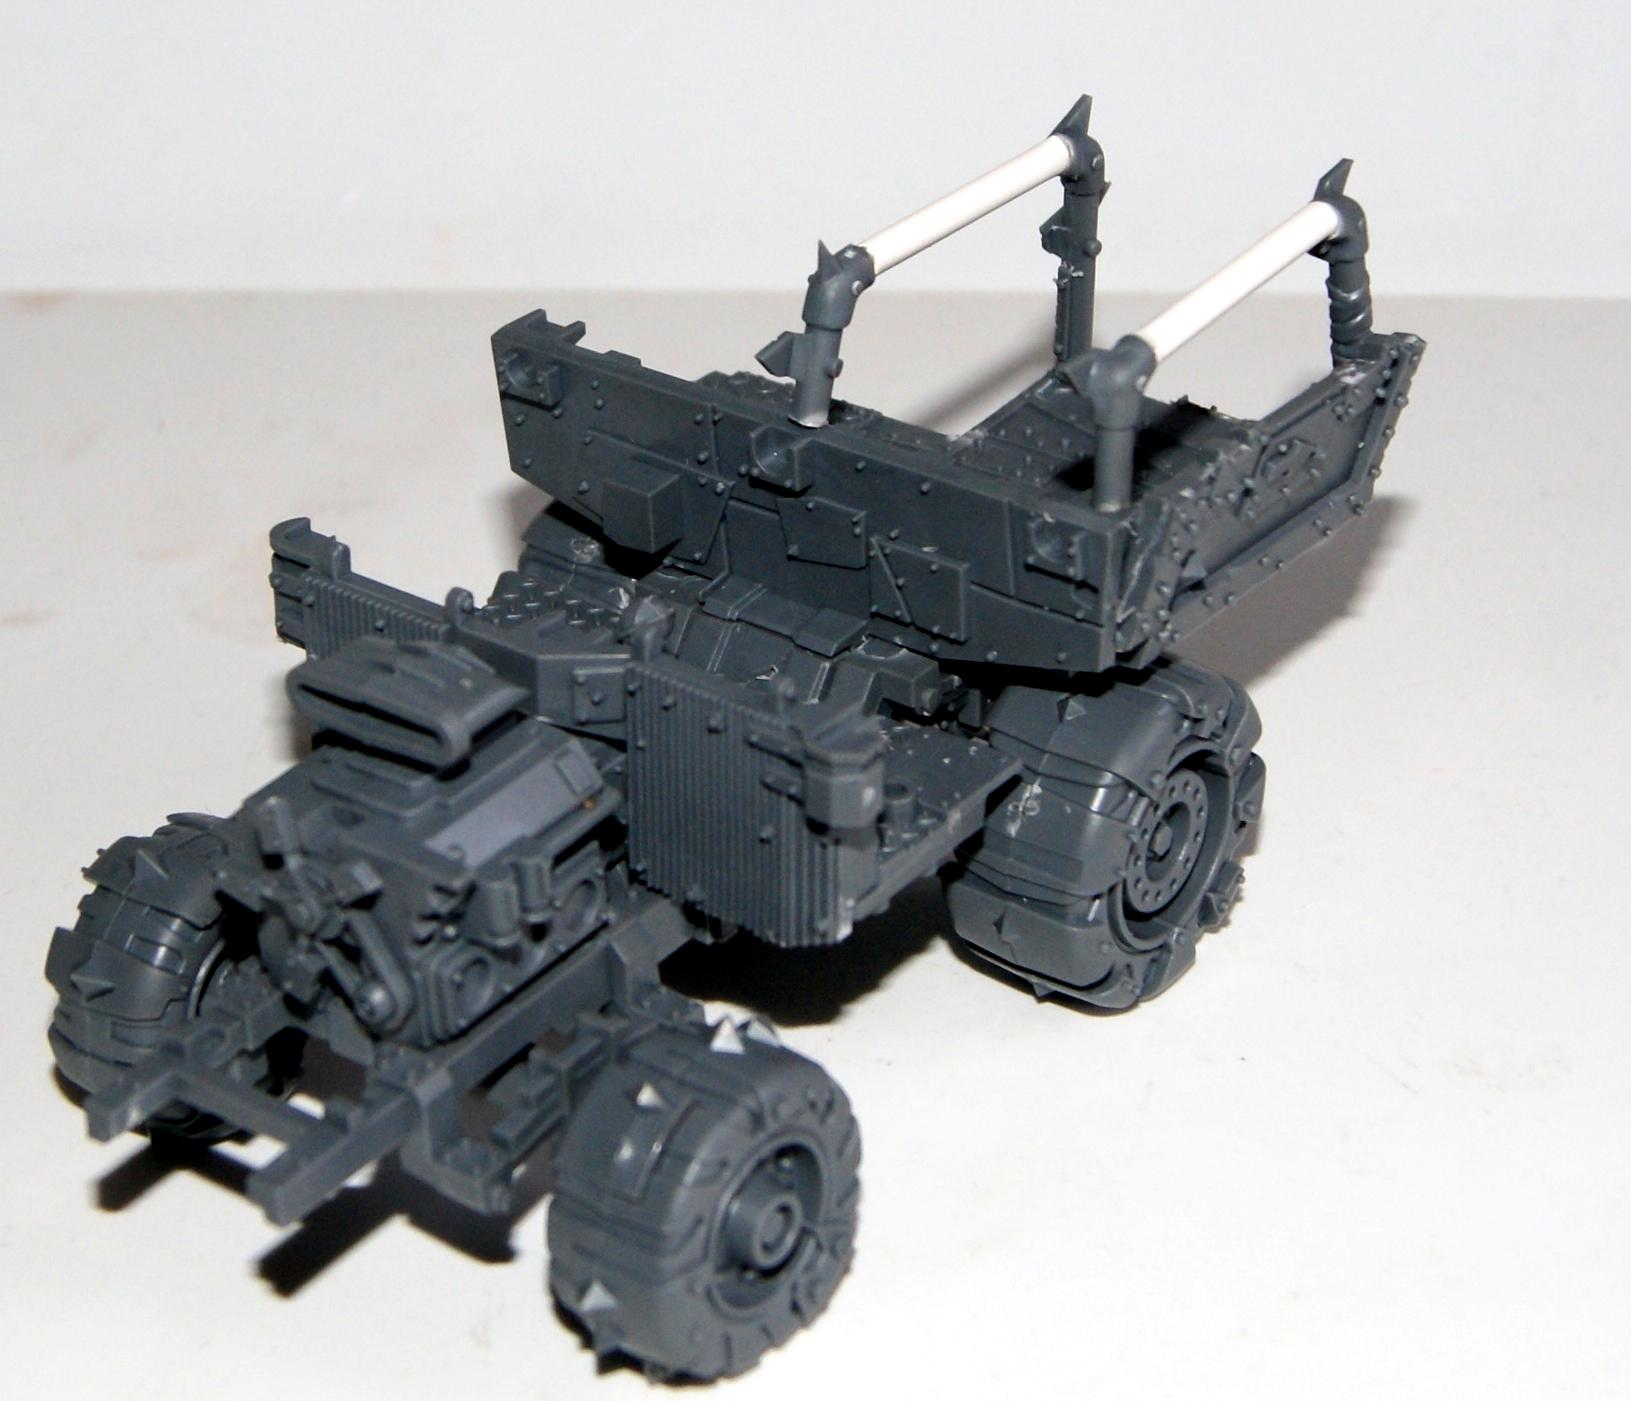 Buggy, Conversion, Grot Rebellion, Grot Rebels, Grots, Warhammer 40,000, Work In Progress